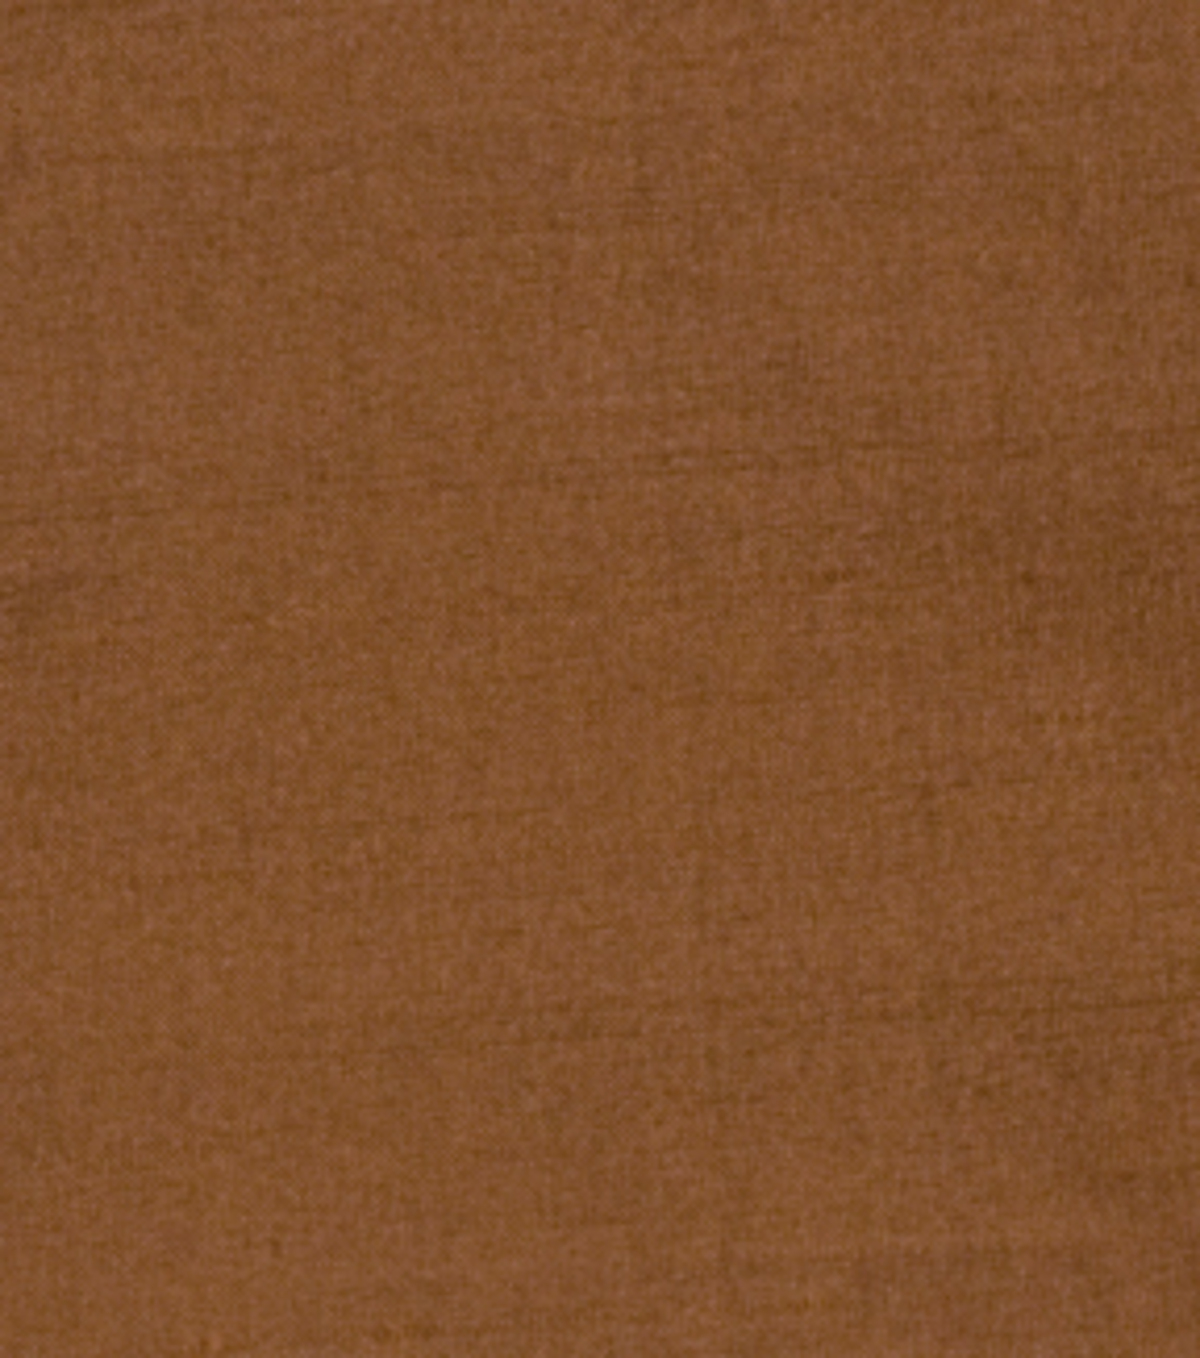 Home Decor 8\u0022x8\u0022 Fabric Swatch-Signature Series Douppioni Silk Caramel